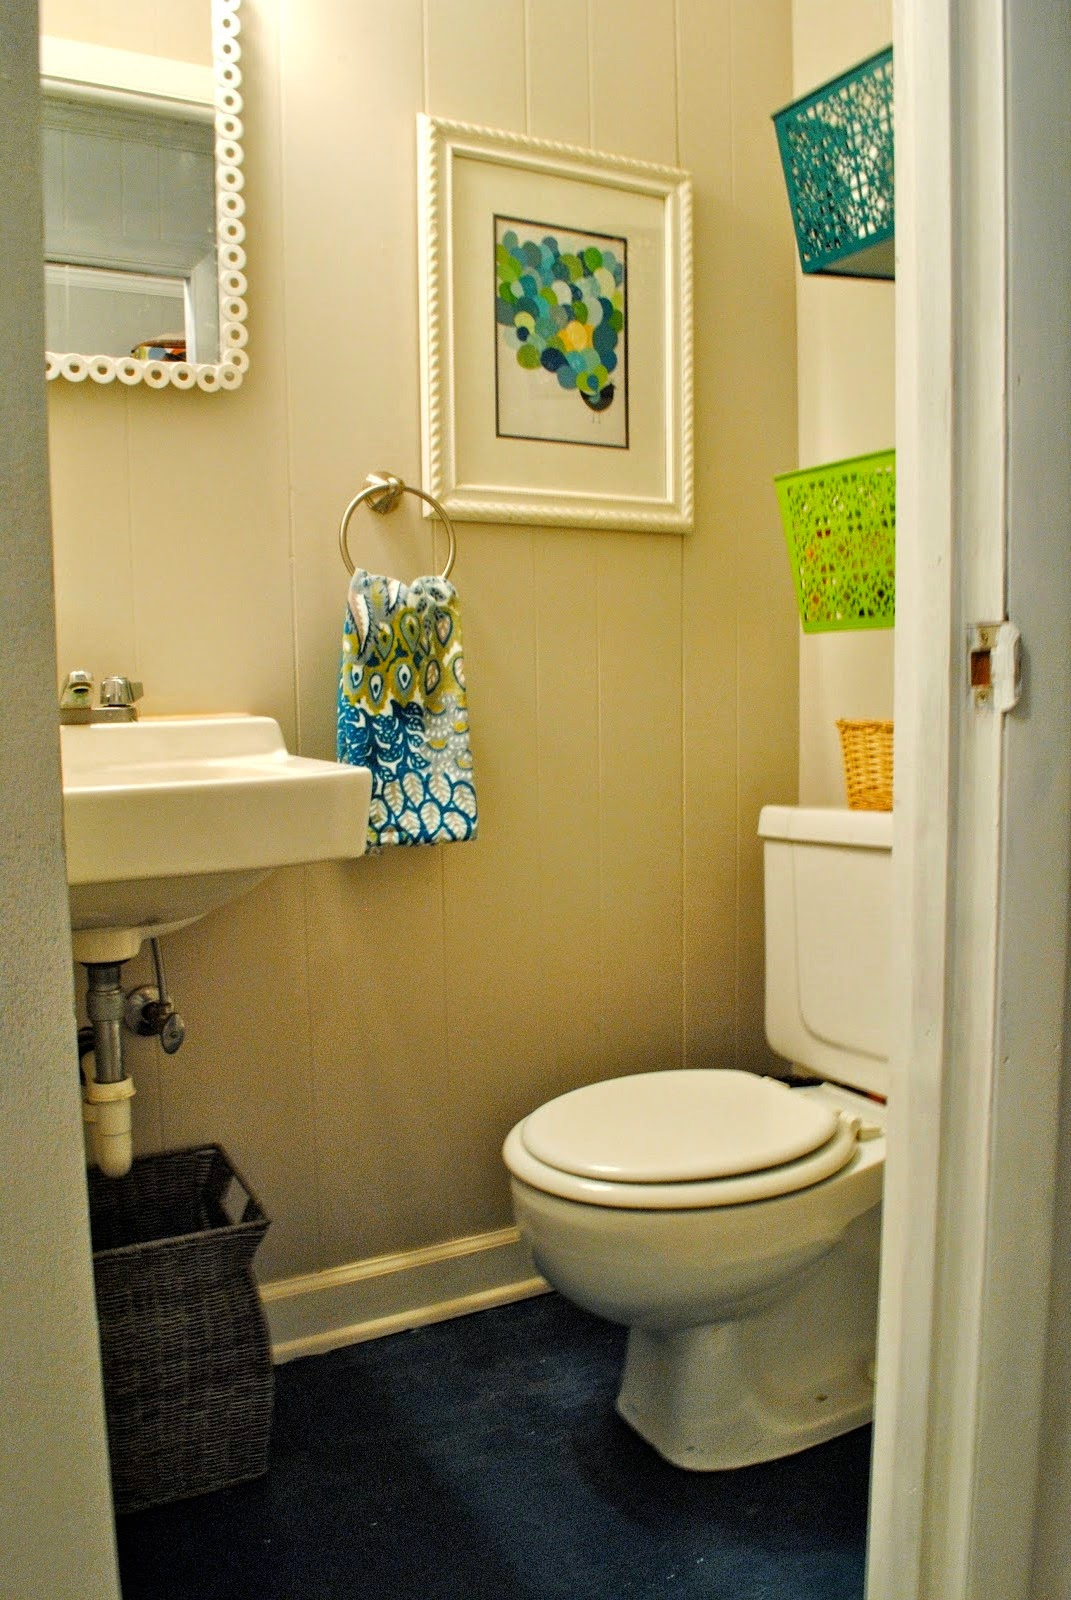 Bathroom Decorating Ideas Small Bathrooms bathroom decor ideas for small bathrooms - creditrestore